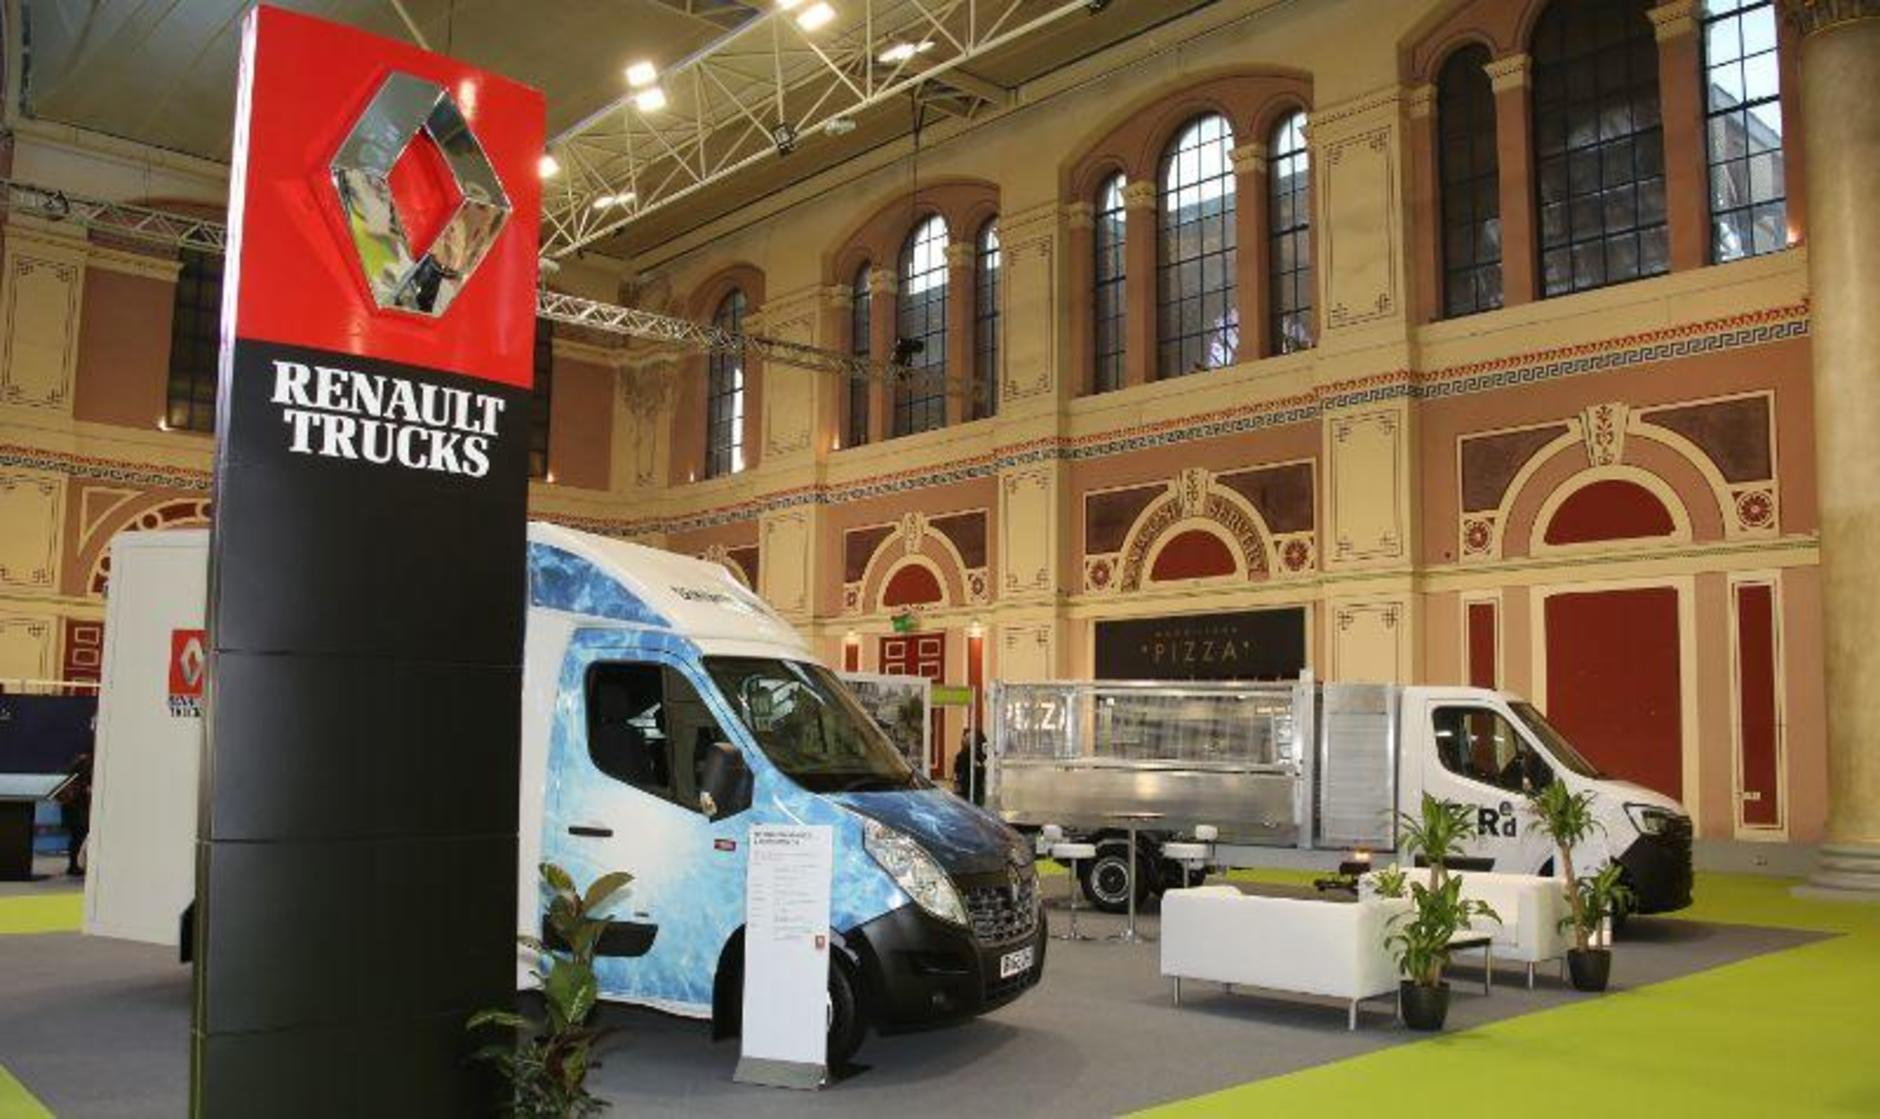 Renault at Freight in the City